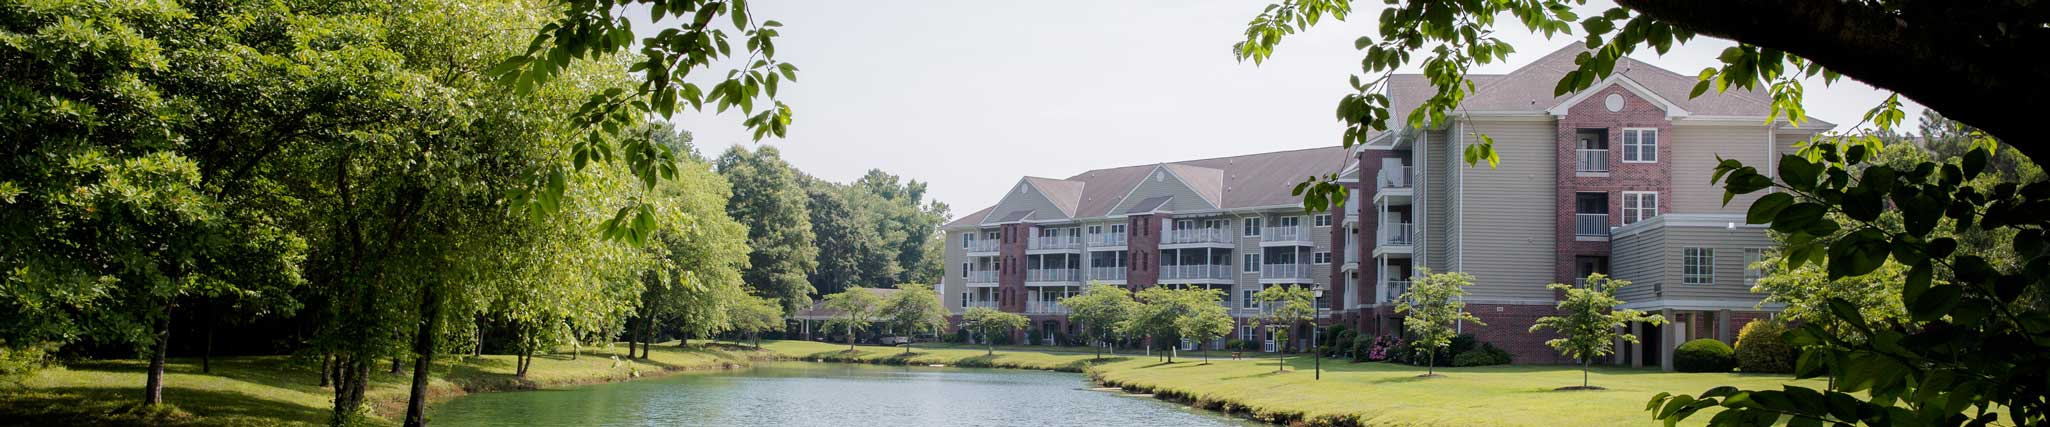 Schedule a Tour Today Atlantic Shores Senior Living in Virginia Beach